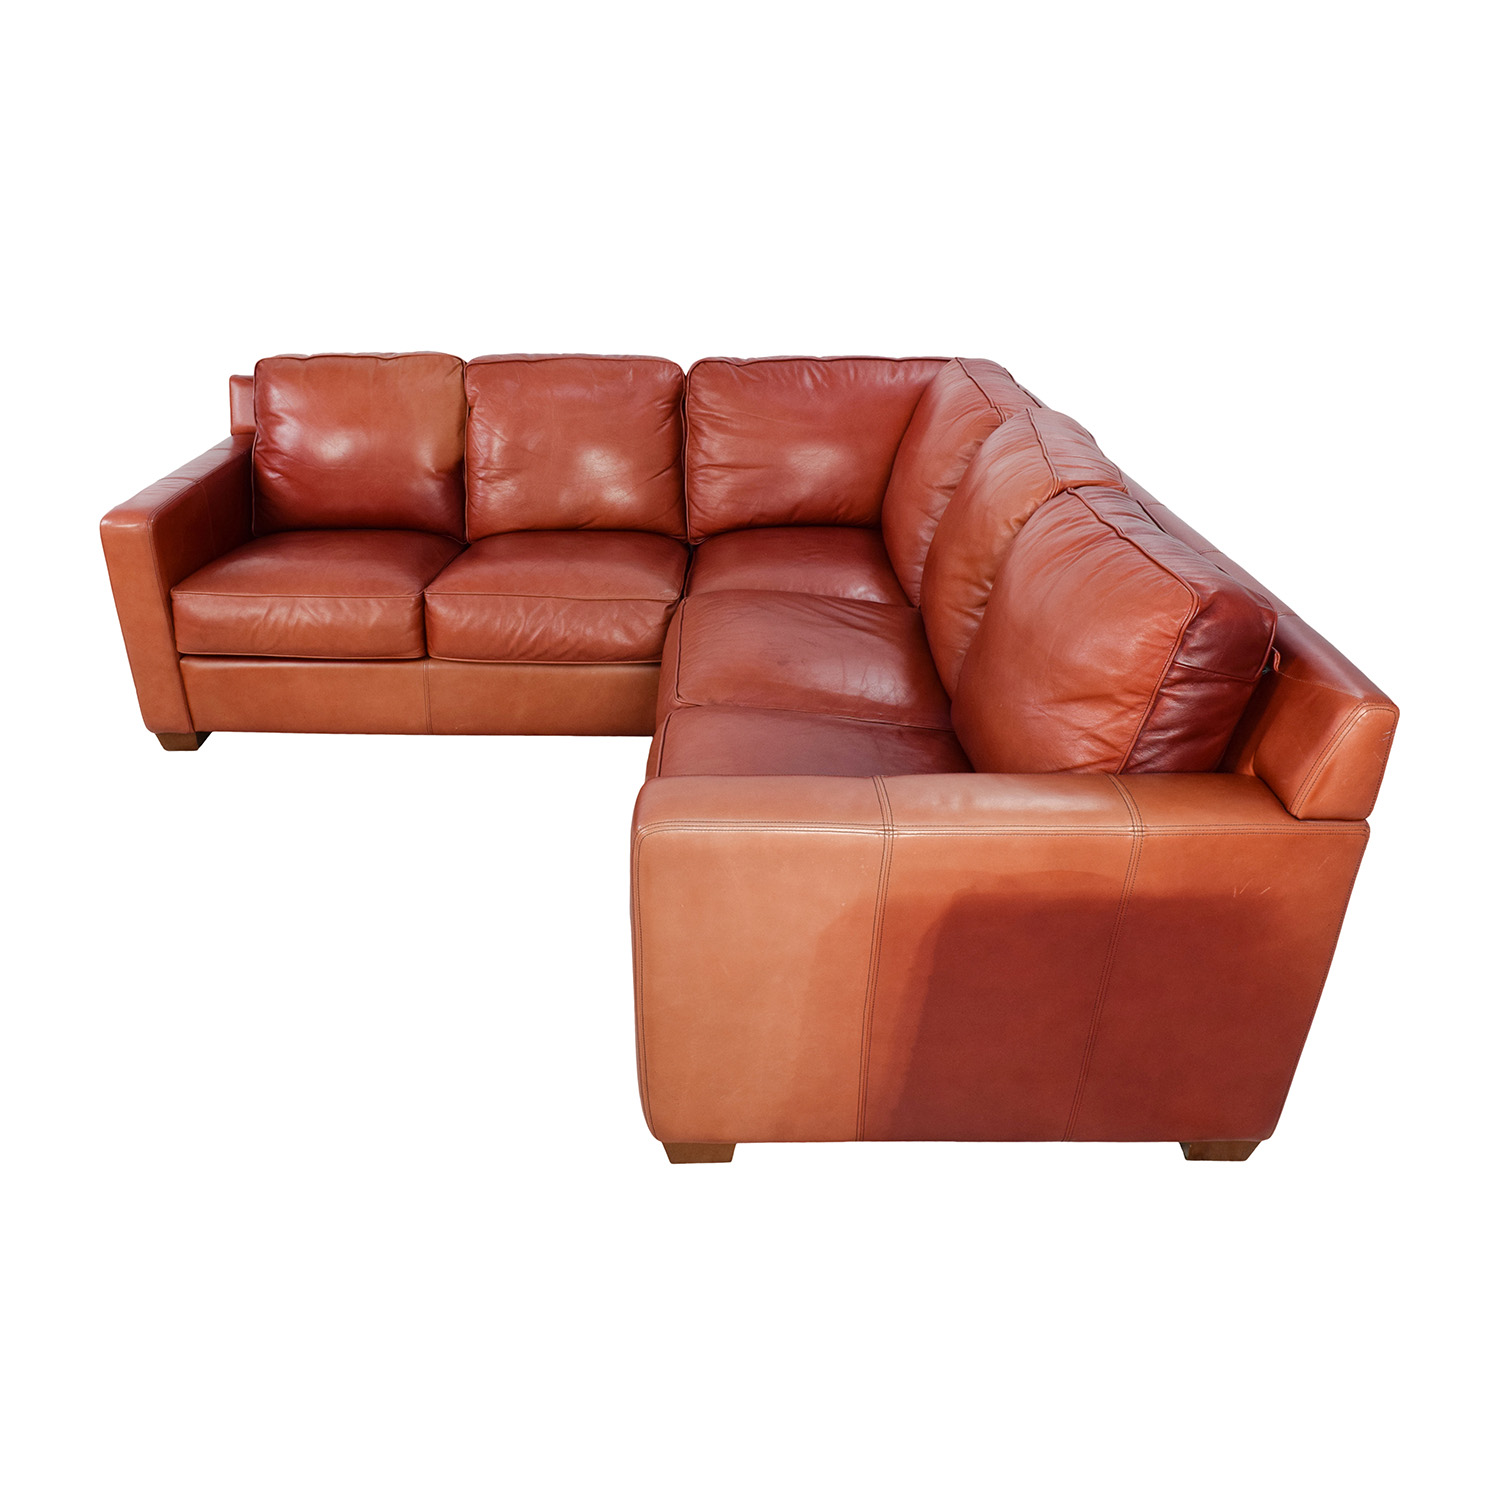 red leather sectional sleeper sofa enchanted home pet winston inspirational couches sofas